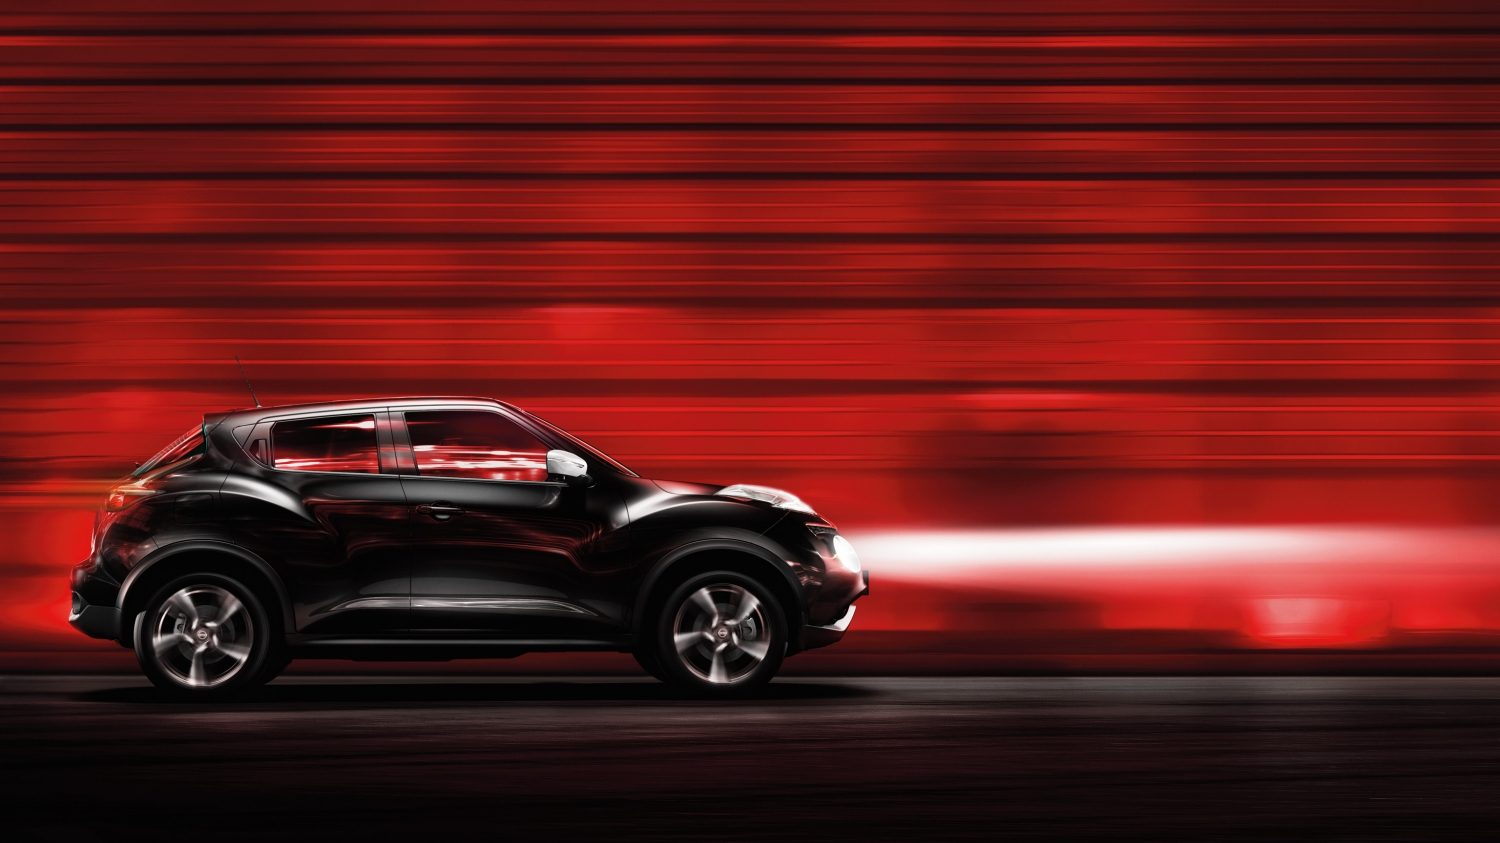 Nissan Juke sort – set i profil